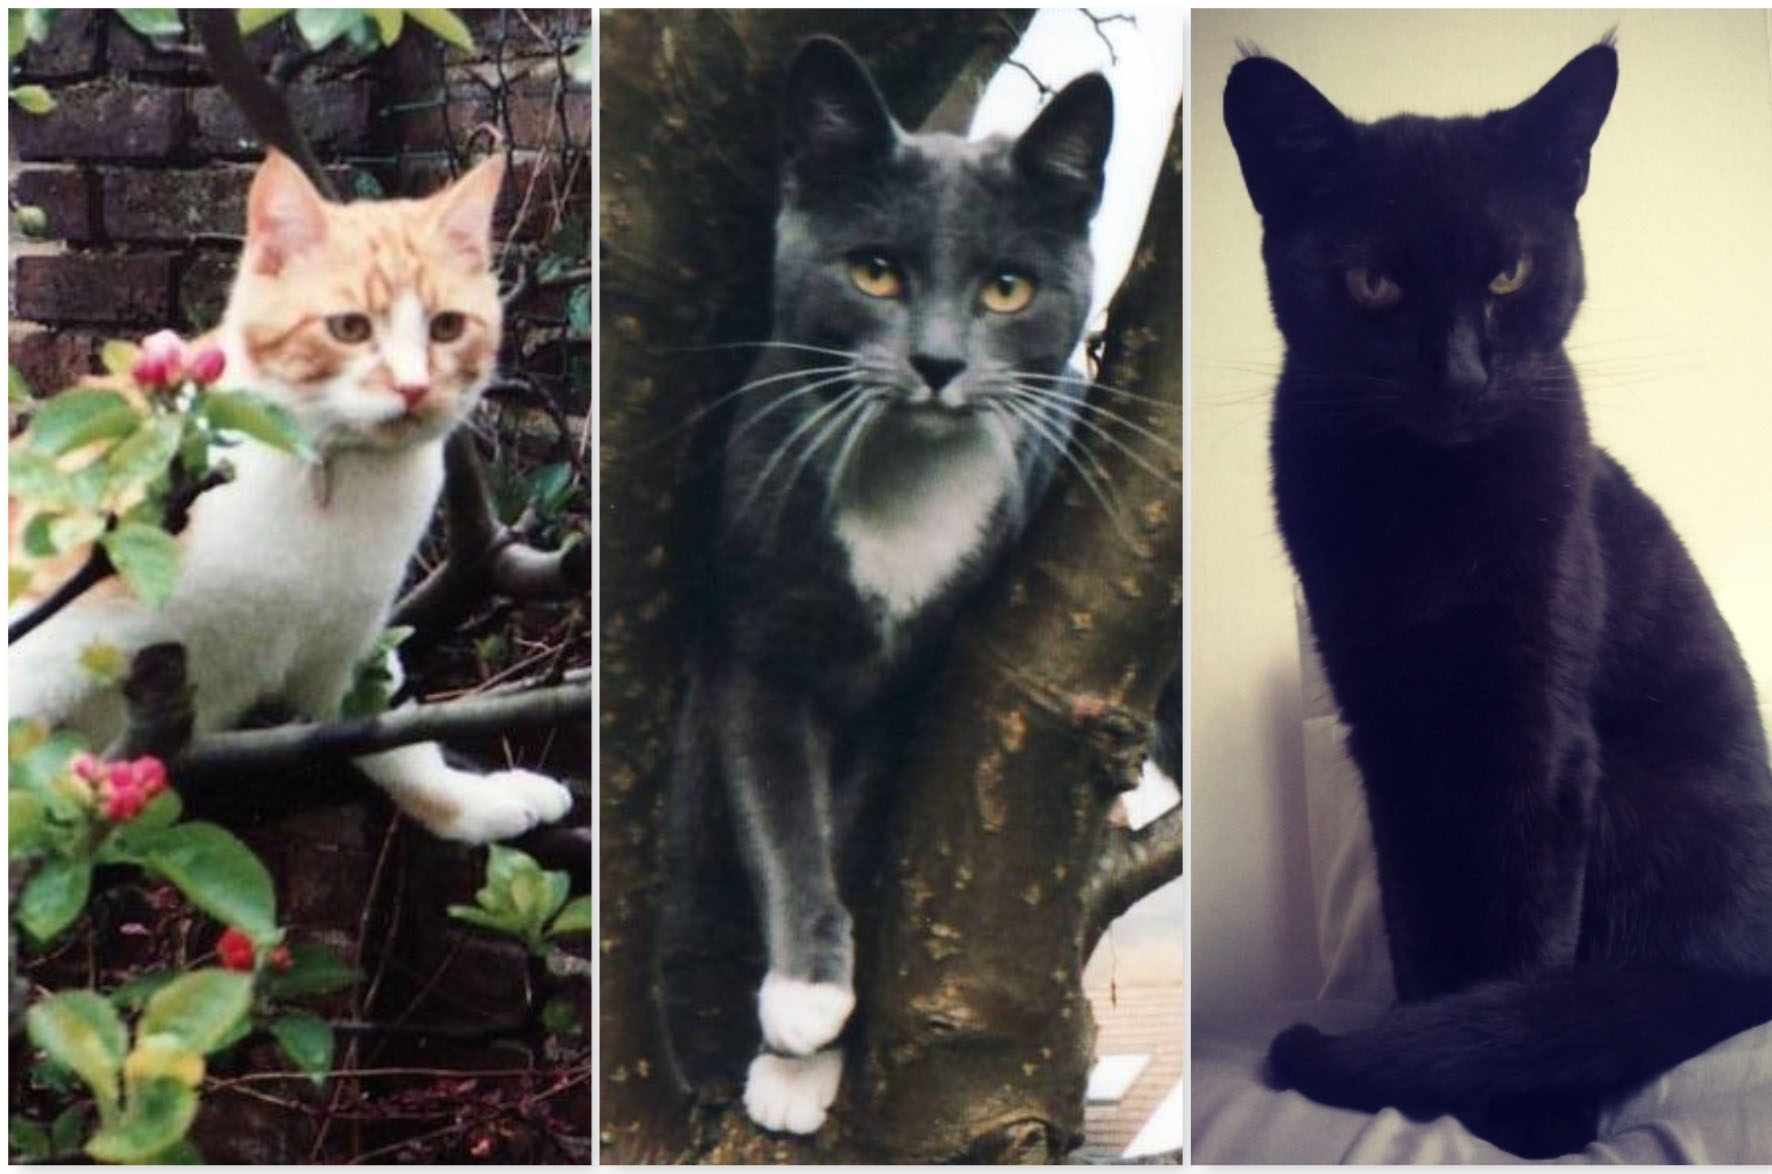 Rusty - ginger cat, Misty - grey cat, and Raven - black cat